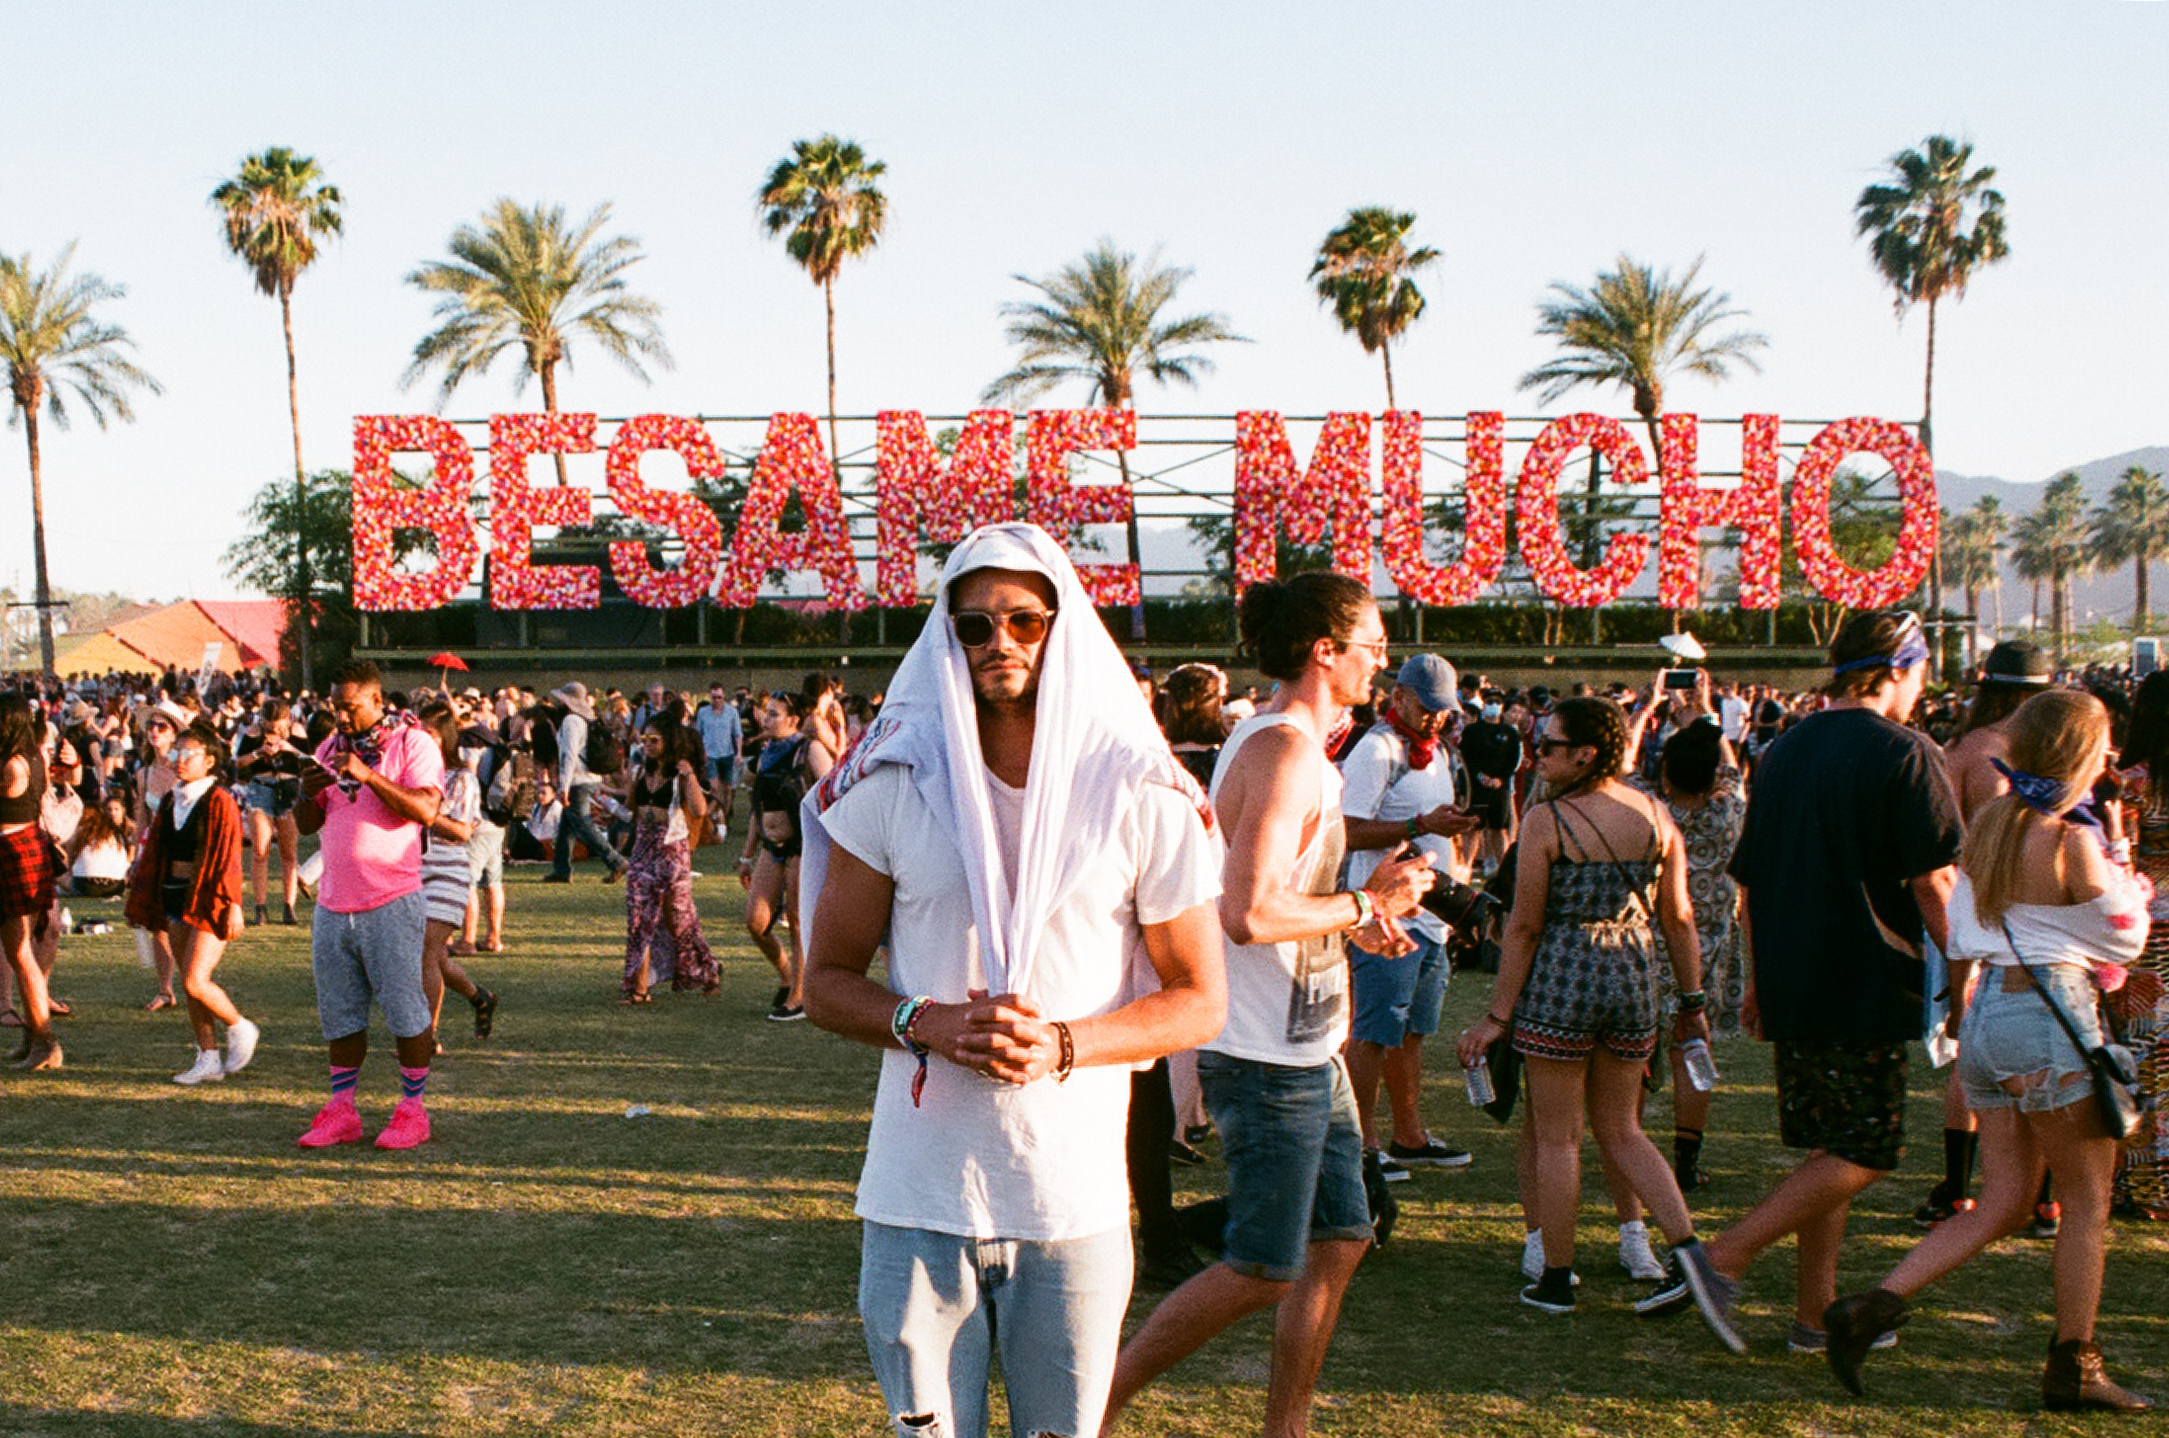 COACHELLA_STAYWILD00026.jpg